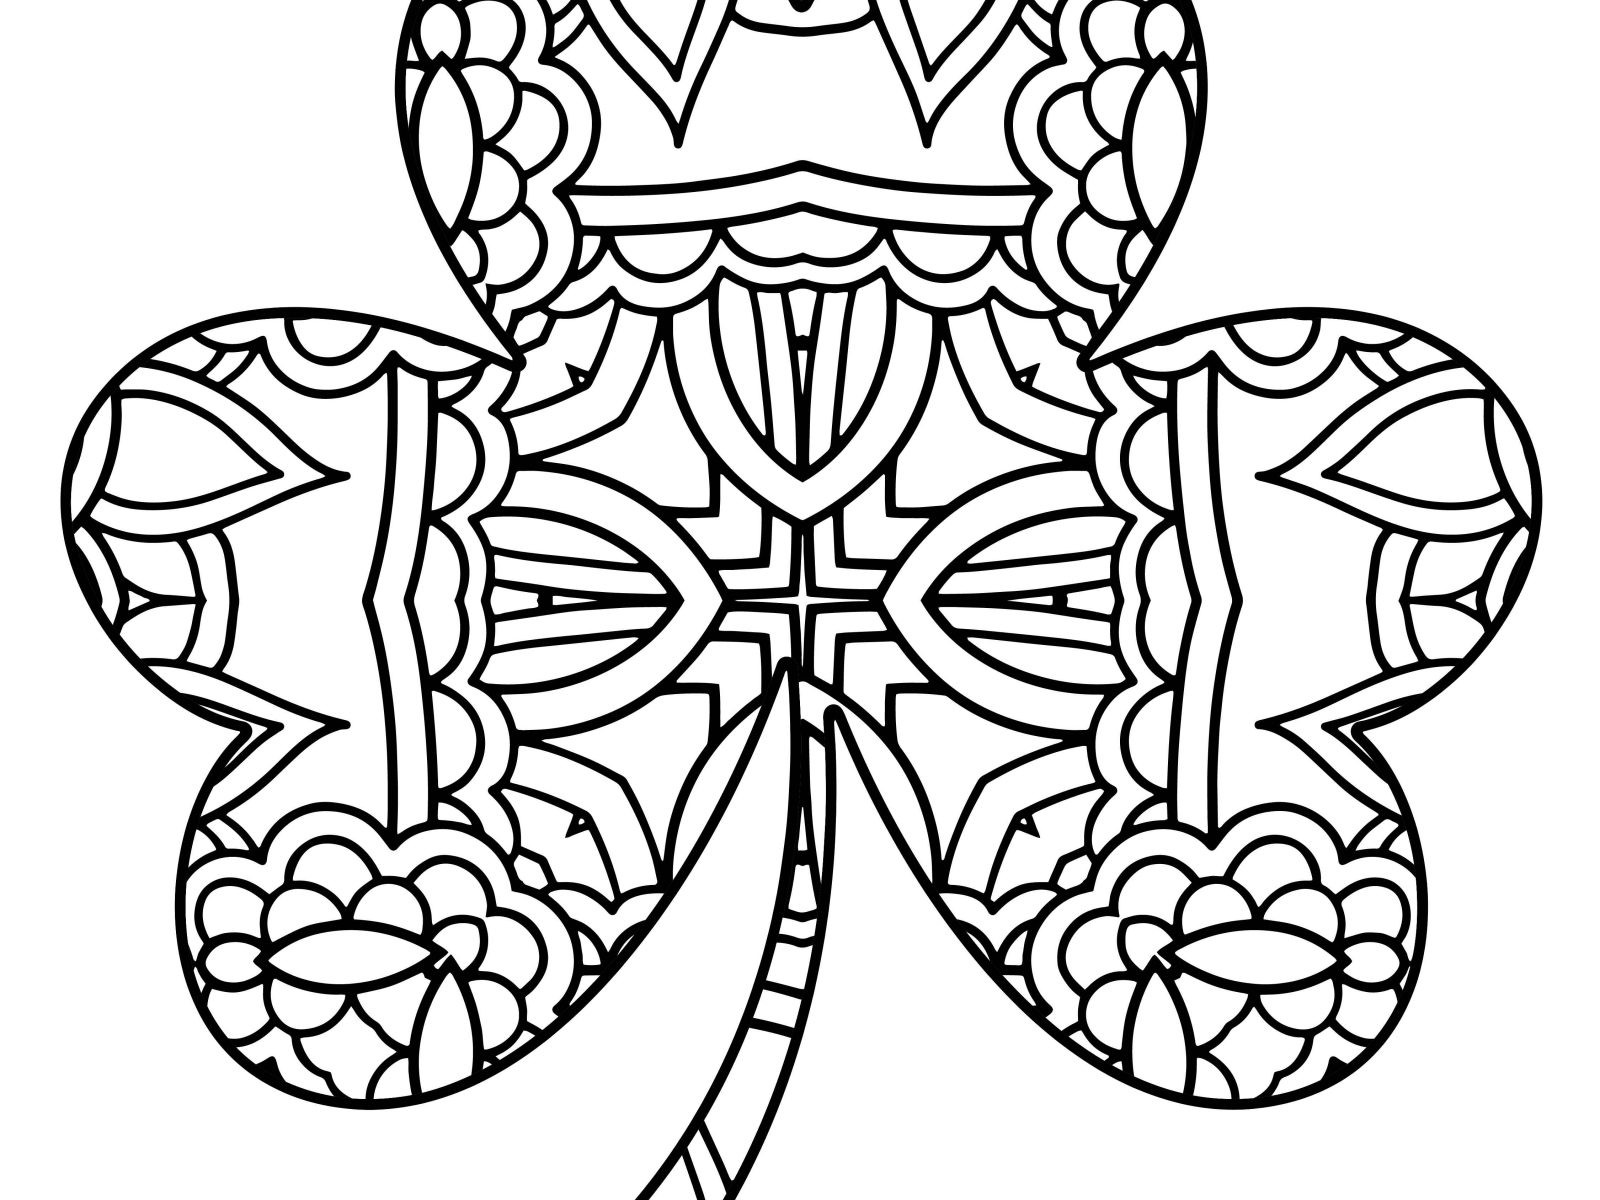 This is an image of Shamrock Coloring Pages Printable throughout kawaii